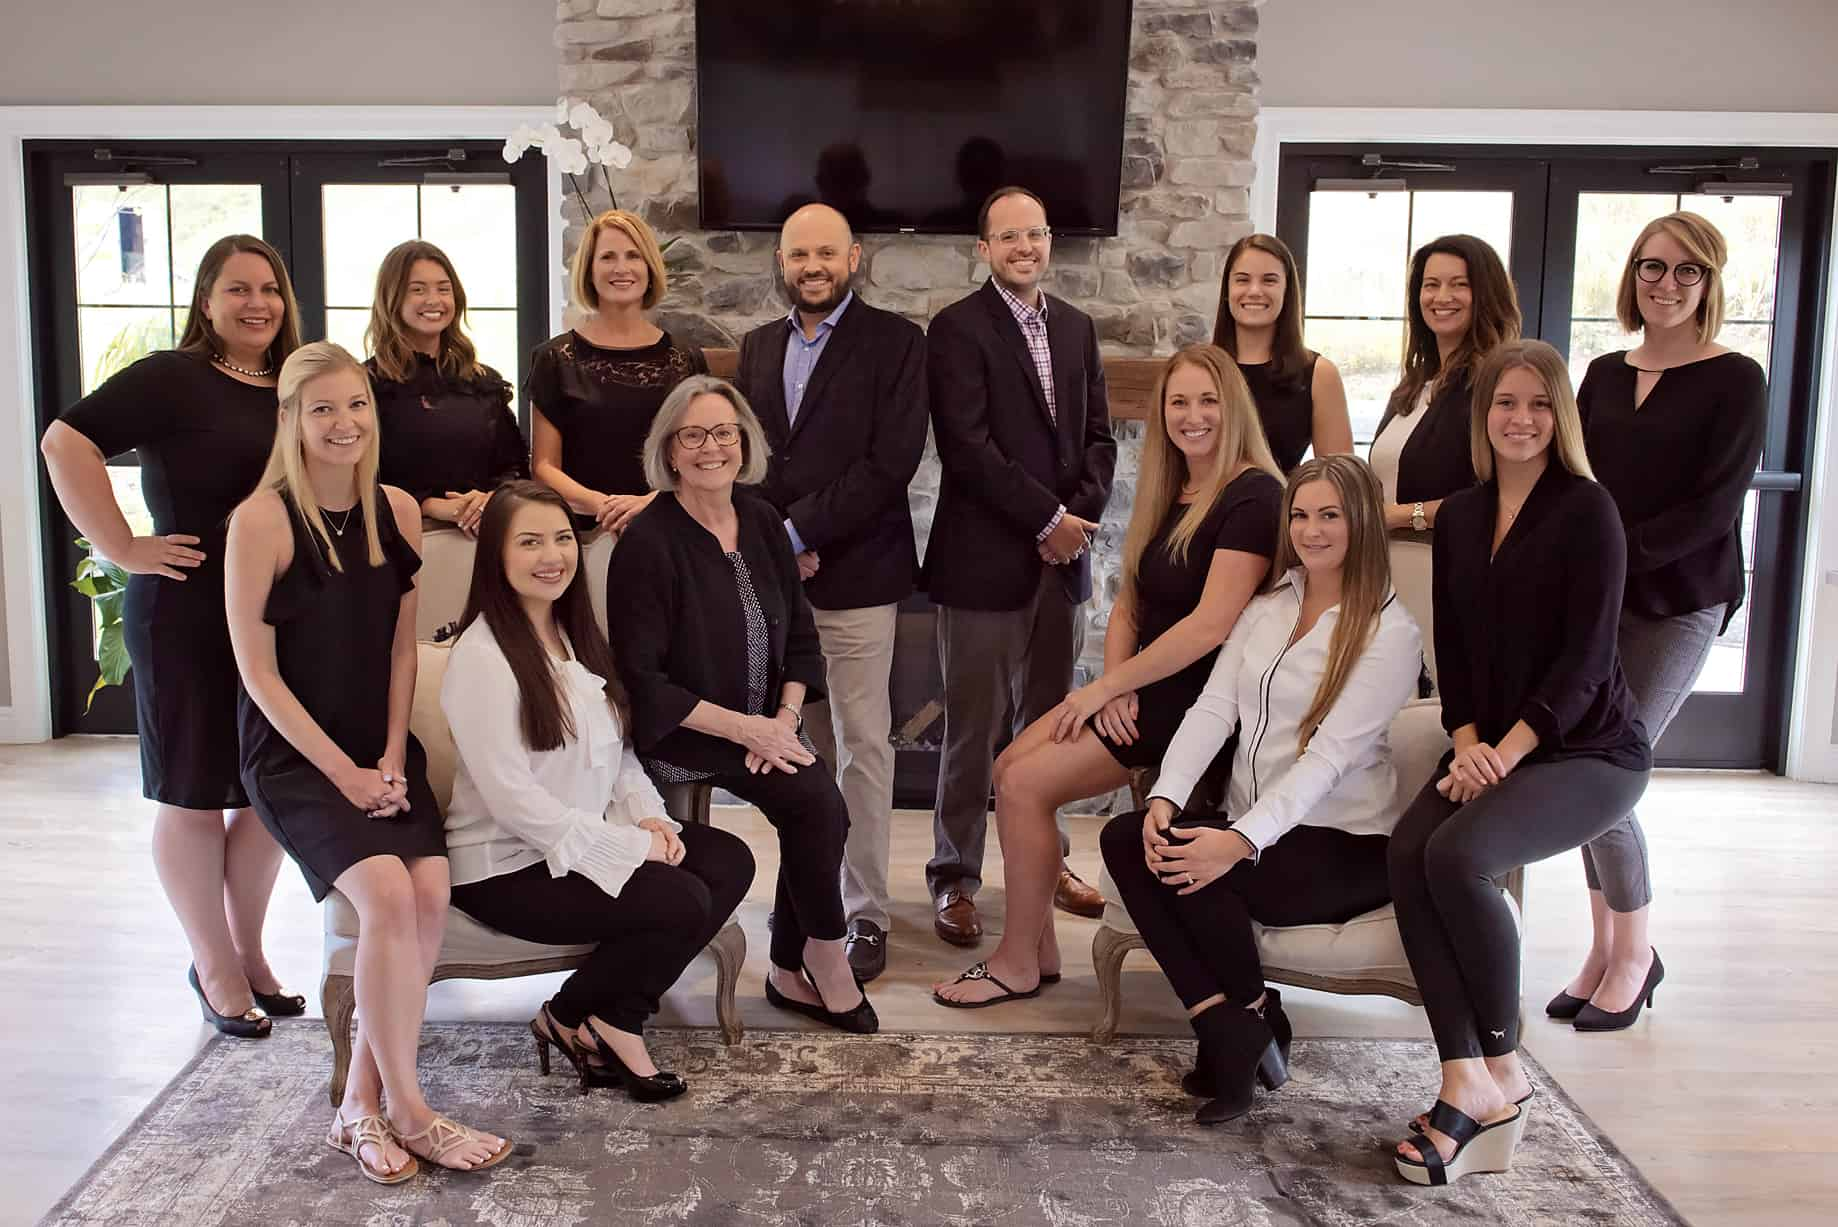 Cranberry Dental Studio | The Team Behind The Reputation